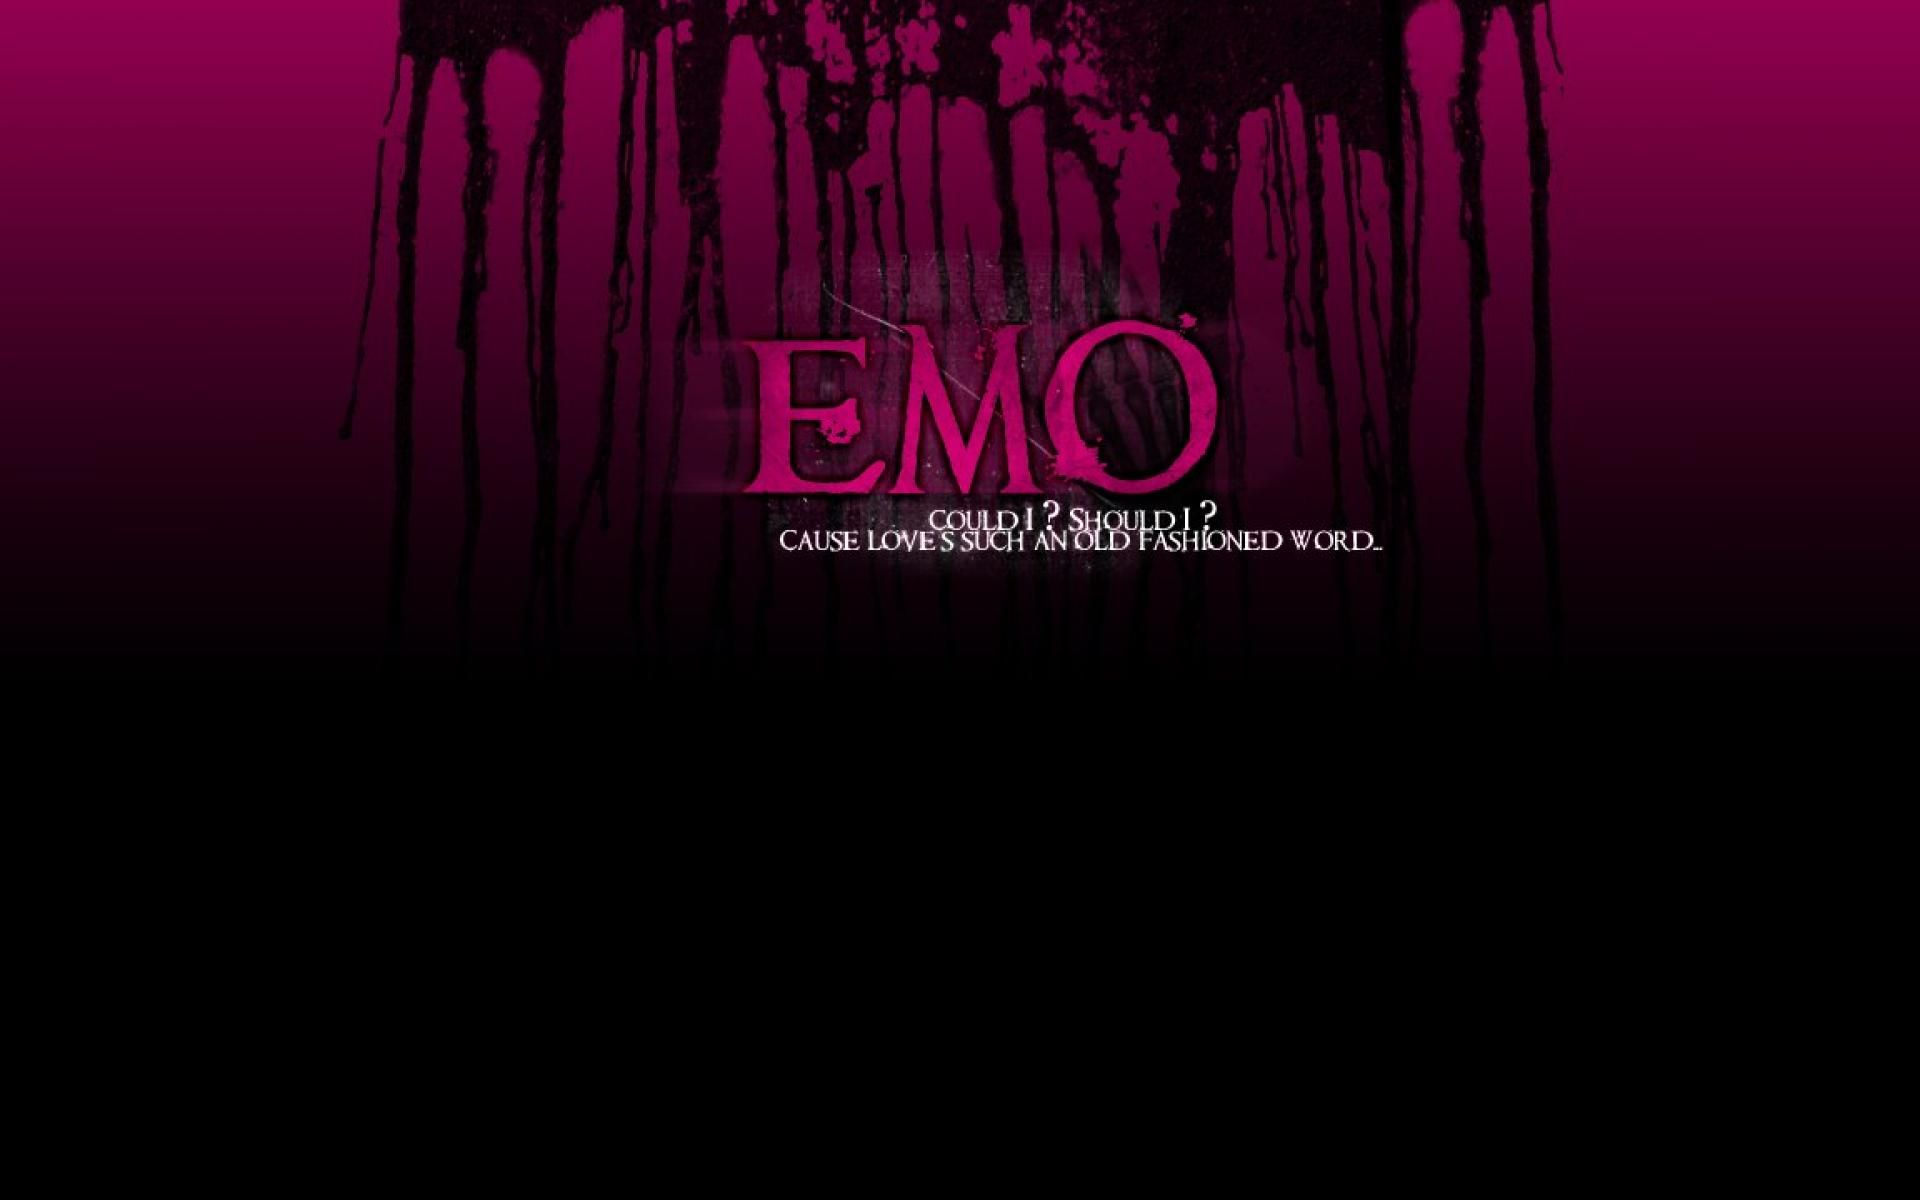 Emo Live Wallpaper Android Apps on Google Play 1600×1200